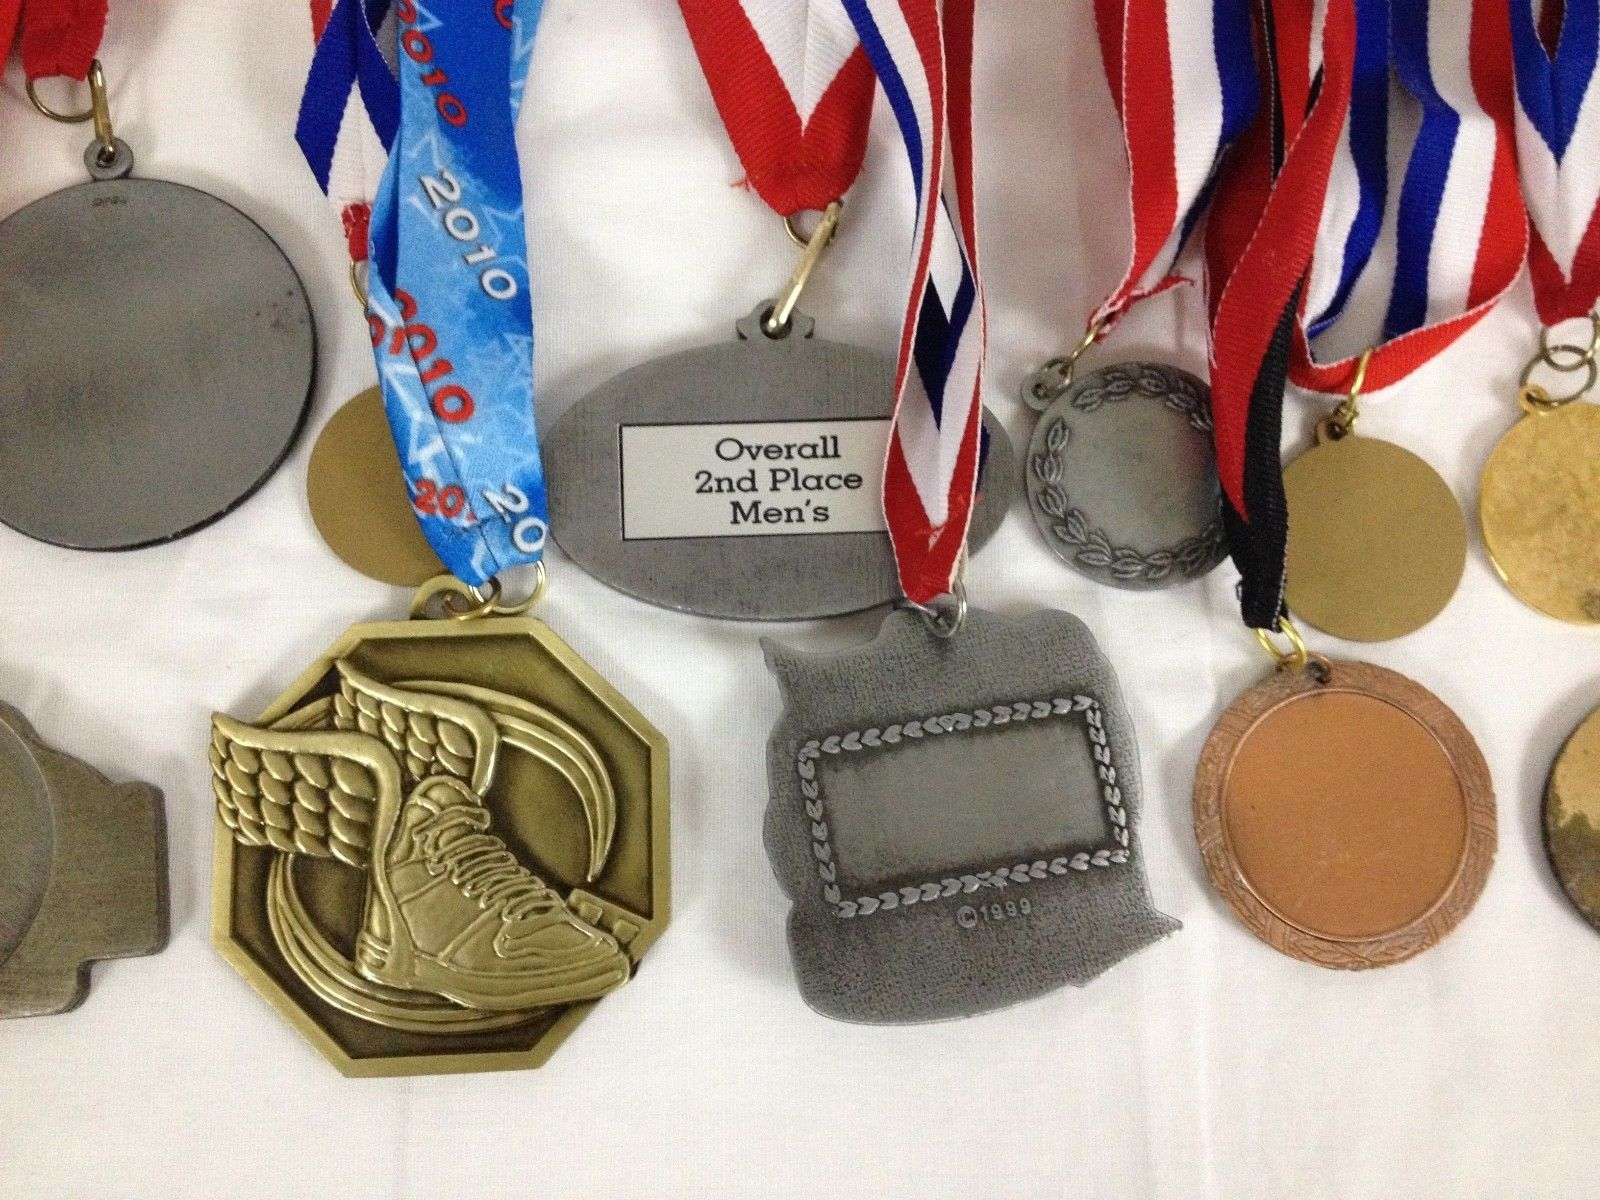 Lot of 14 Running Race Medals Medallions Awards From Various Events image 9